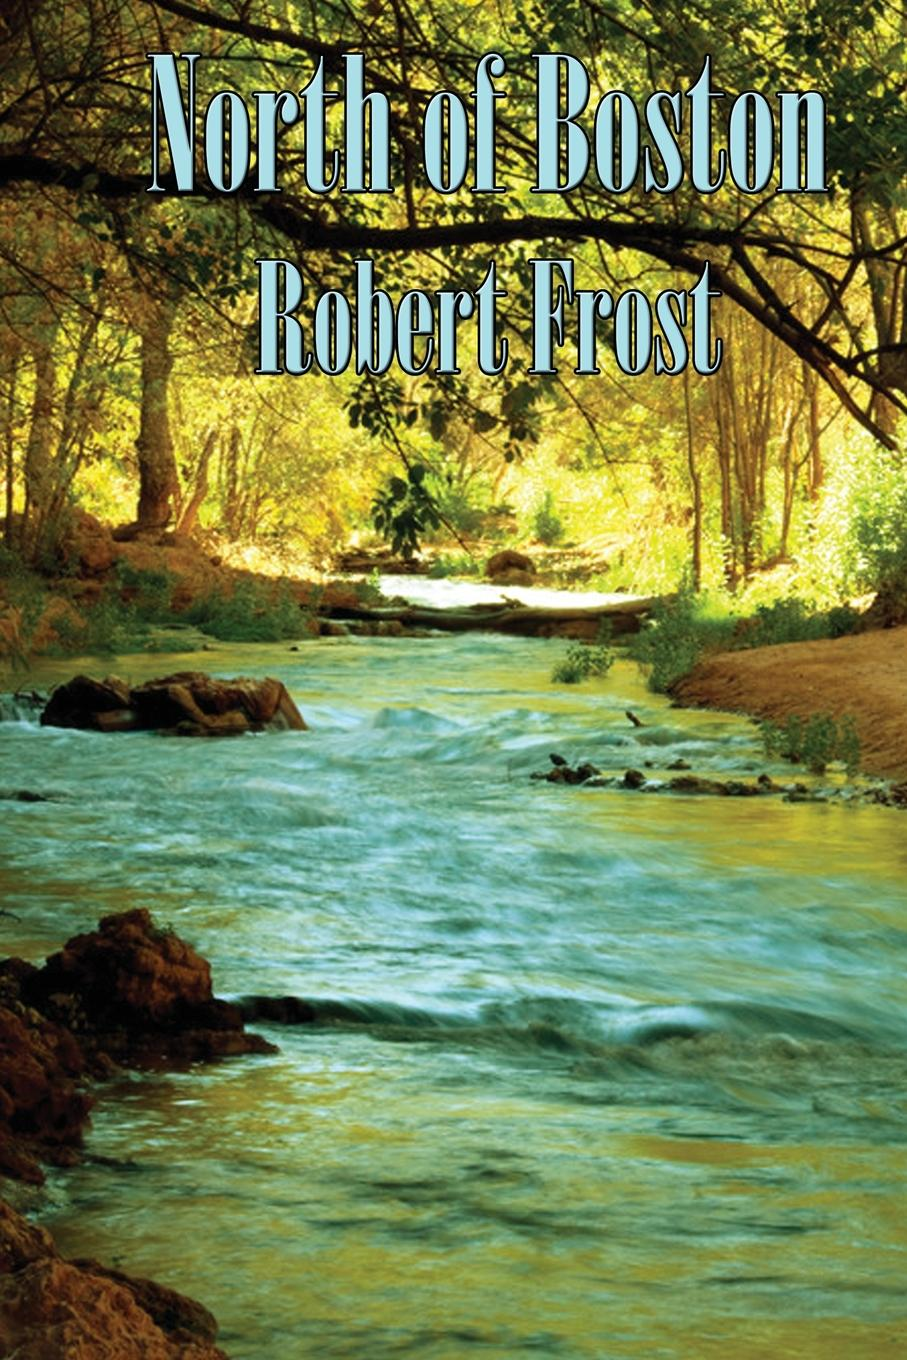 Robert Frost North of Boston robert frost robert frost selected poems